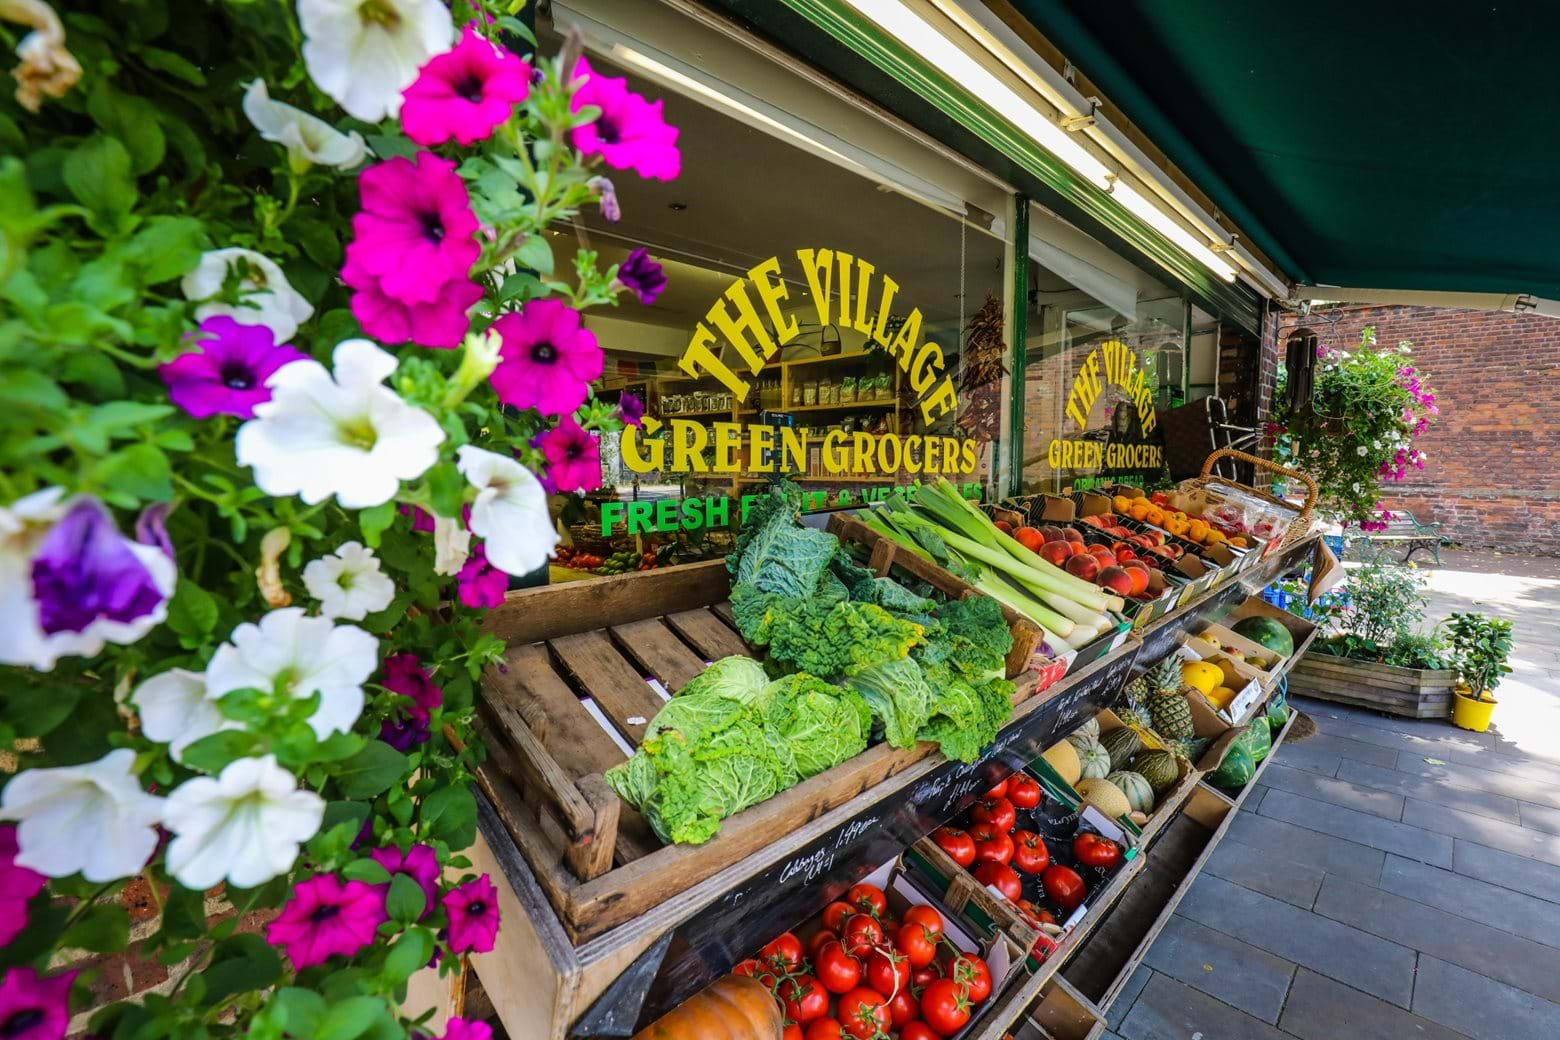 Local greengrocer in Charlton